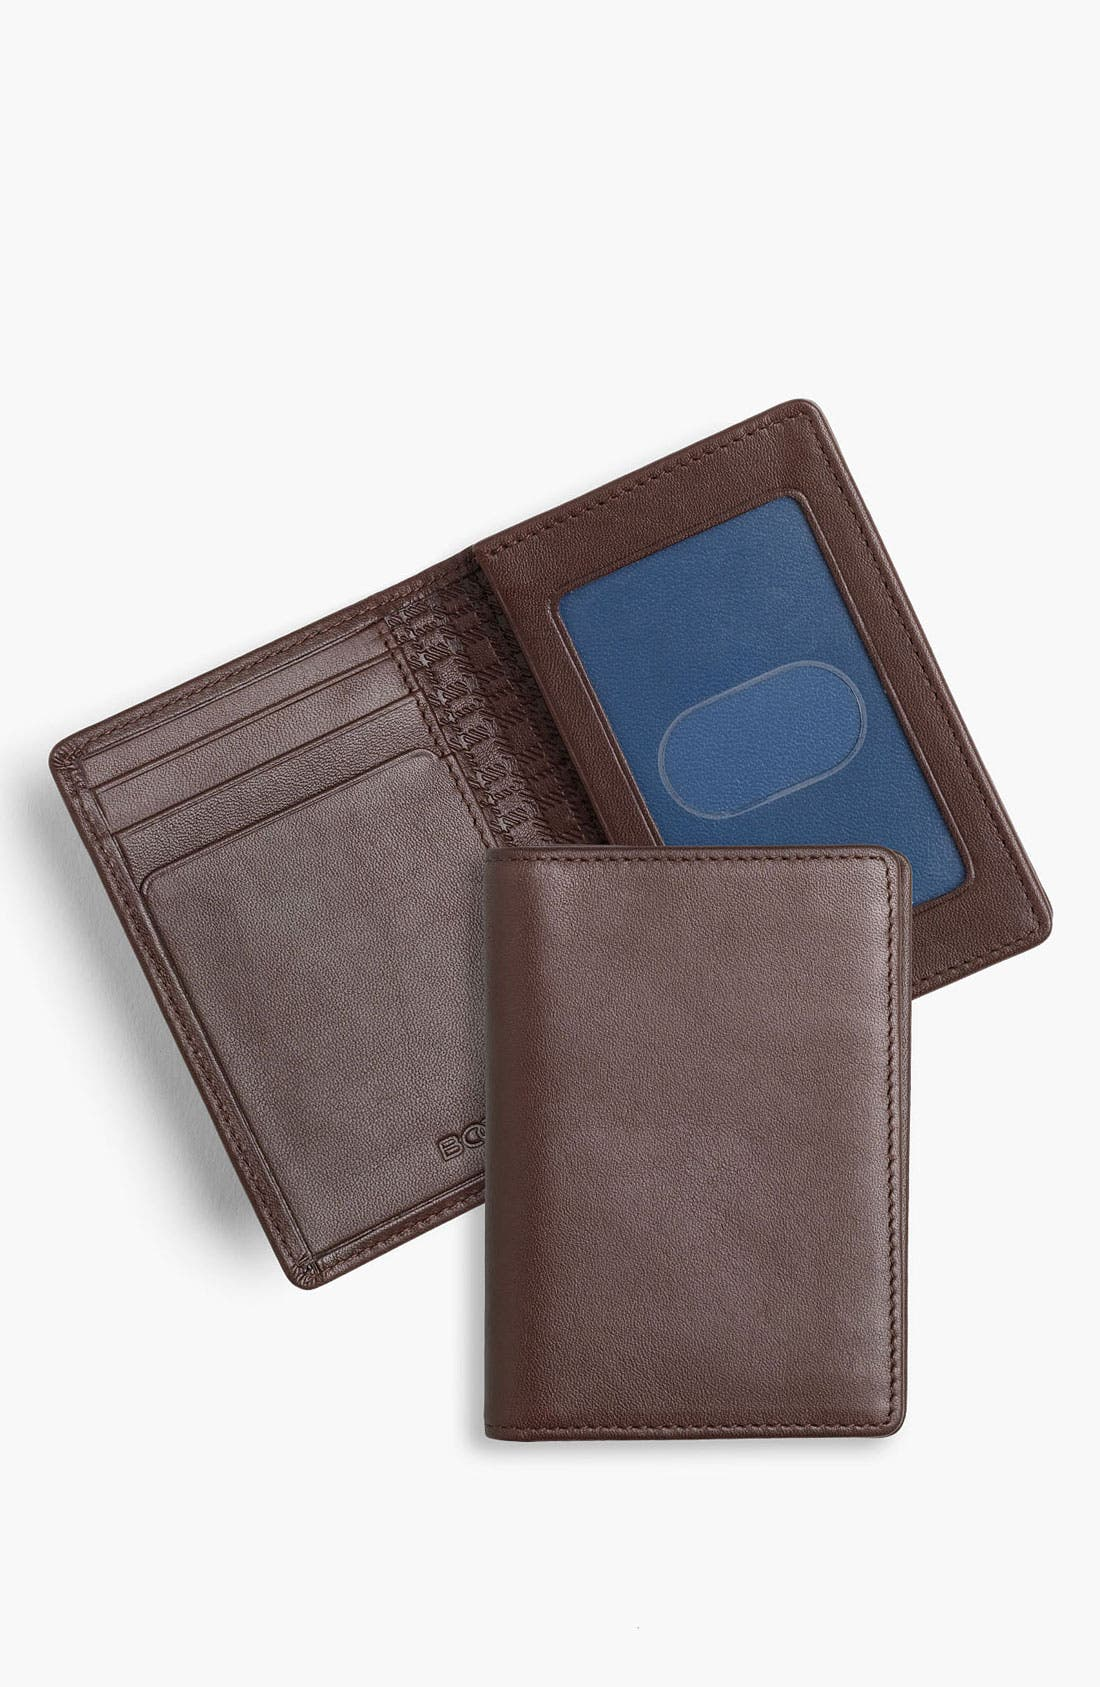 Main Image - Boconi 'Deluxe' Calfskin Card Case